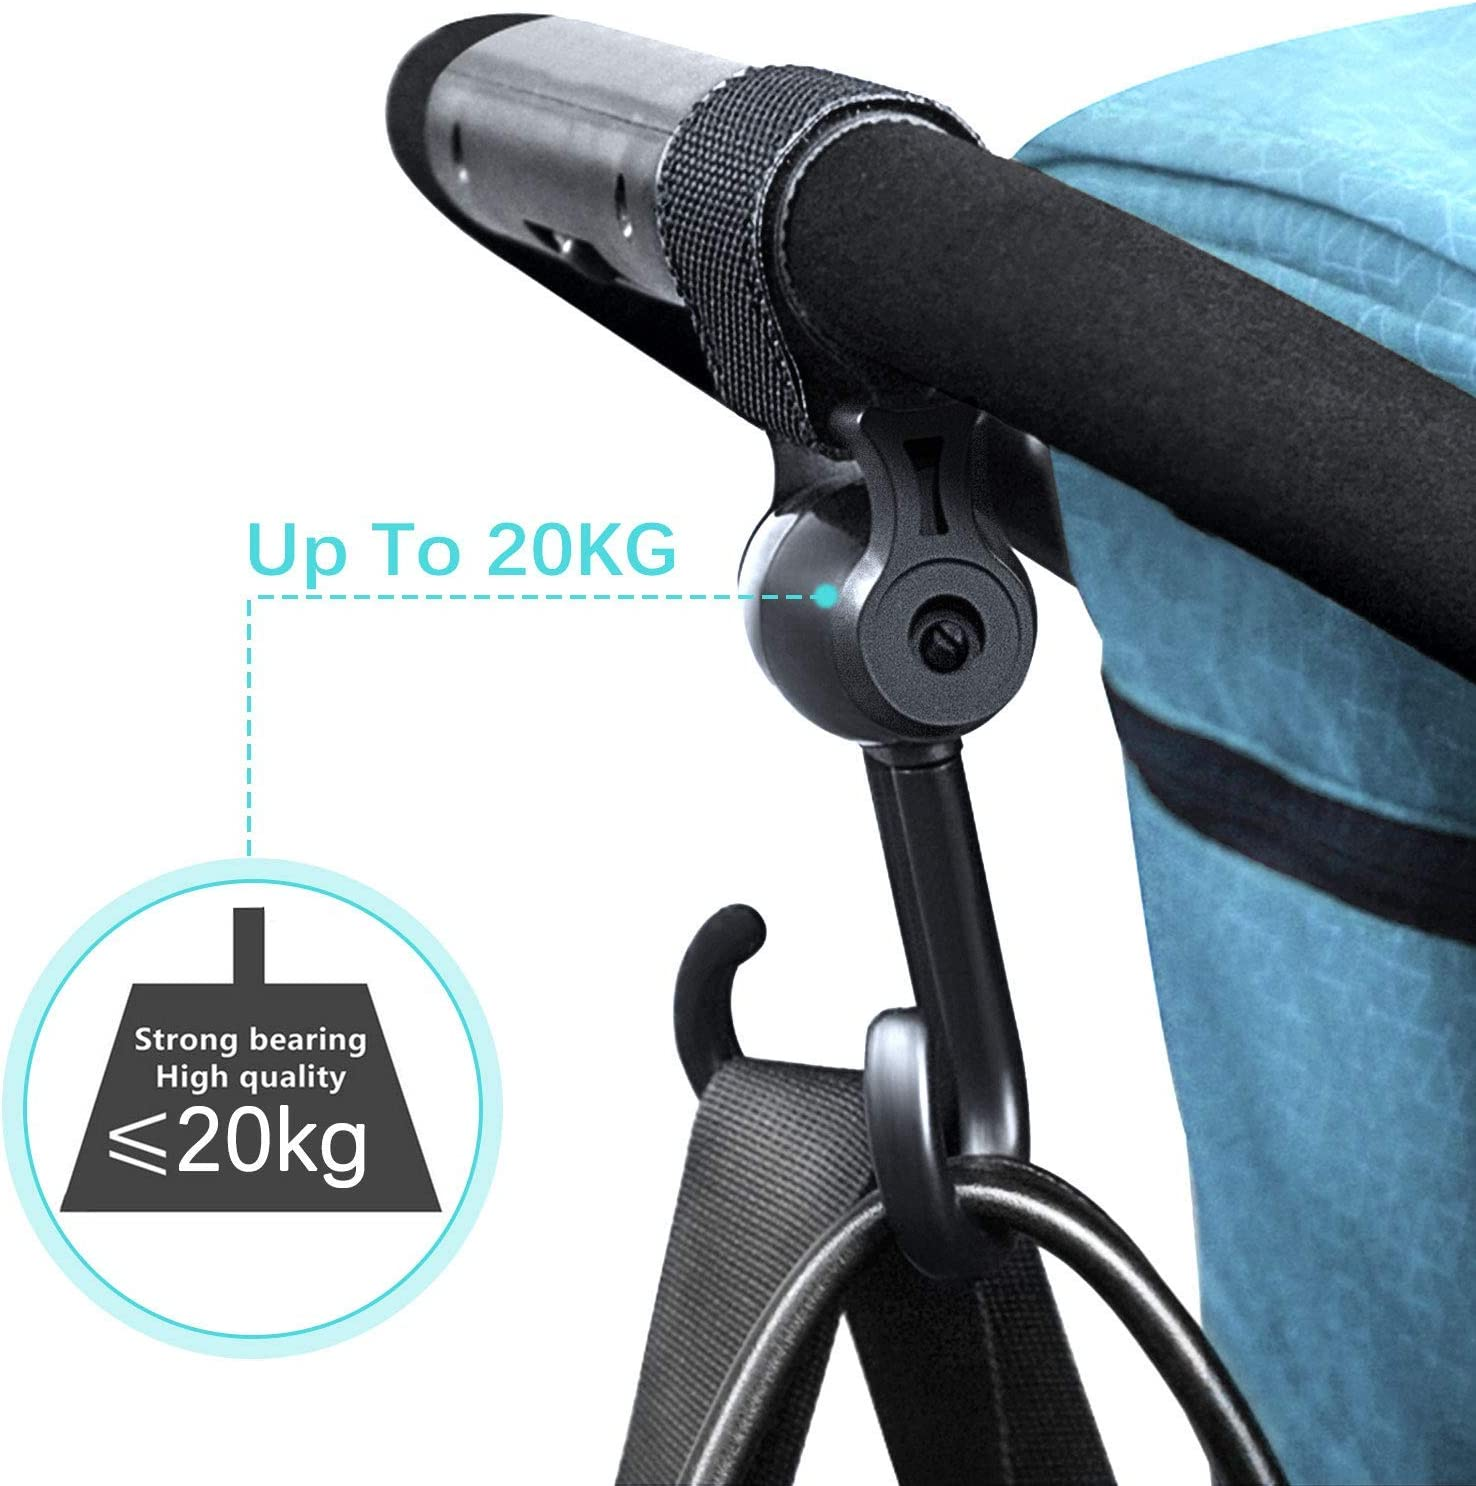 2PCS 2 Pack 20KG Bearing Universal Multi-Purpose for Changing Bag Holder and Shopping Bag 2 Pack Click to Open expanded View Buggy Clips Pram Clip Hooks for Stroller Pushchair